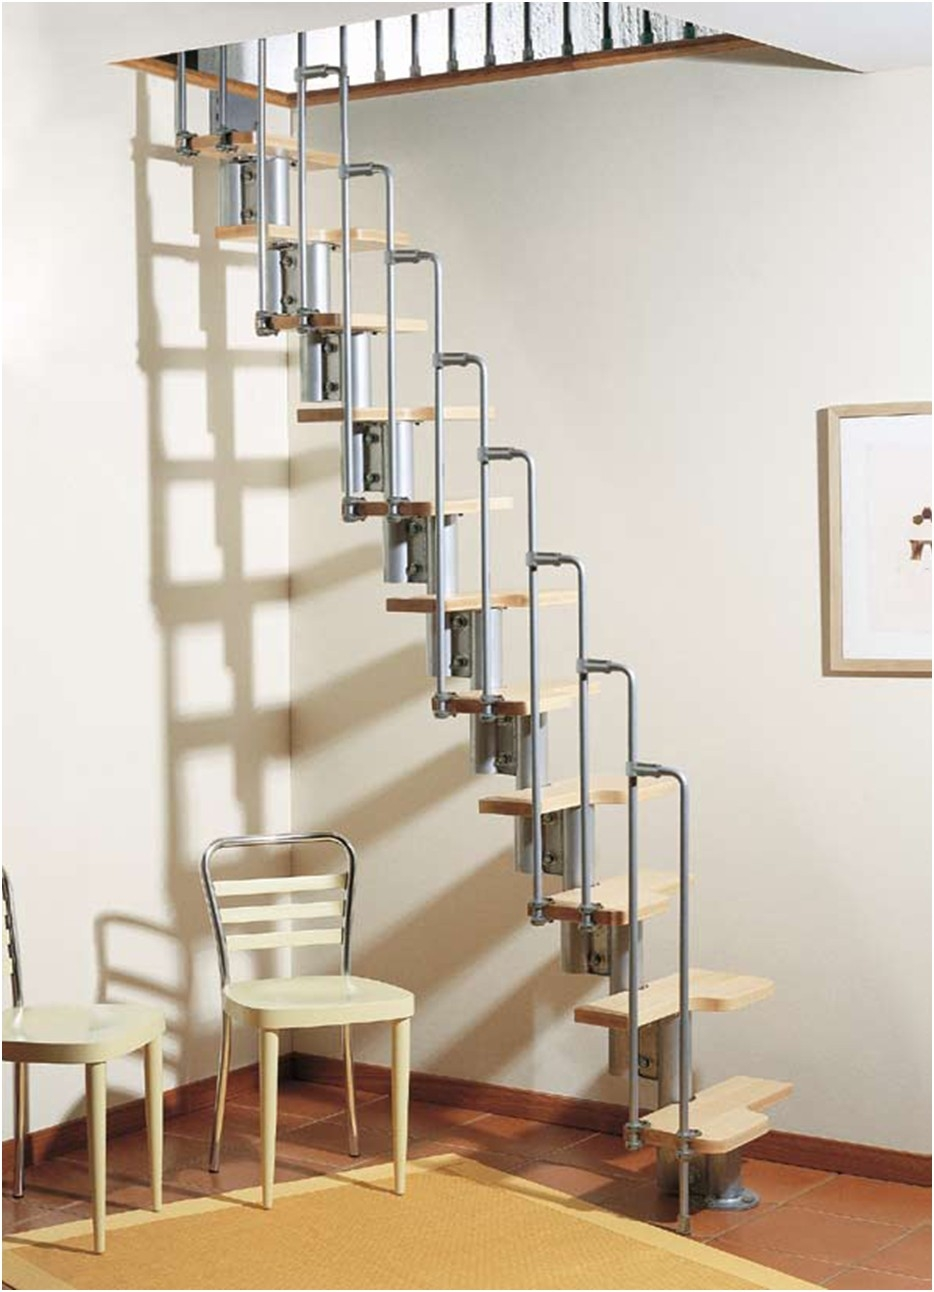 Karina Modular Staircase Kit Metal Steel And Wood Spiral | 12 Foot Spiral Staircase | Lowes | Stair Treads | Black Spiral | Steel | Gray Interior